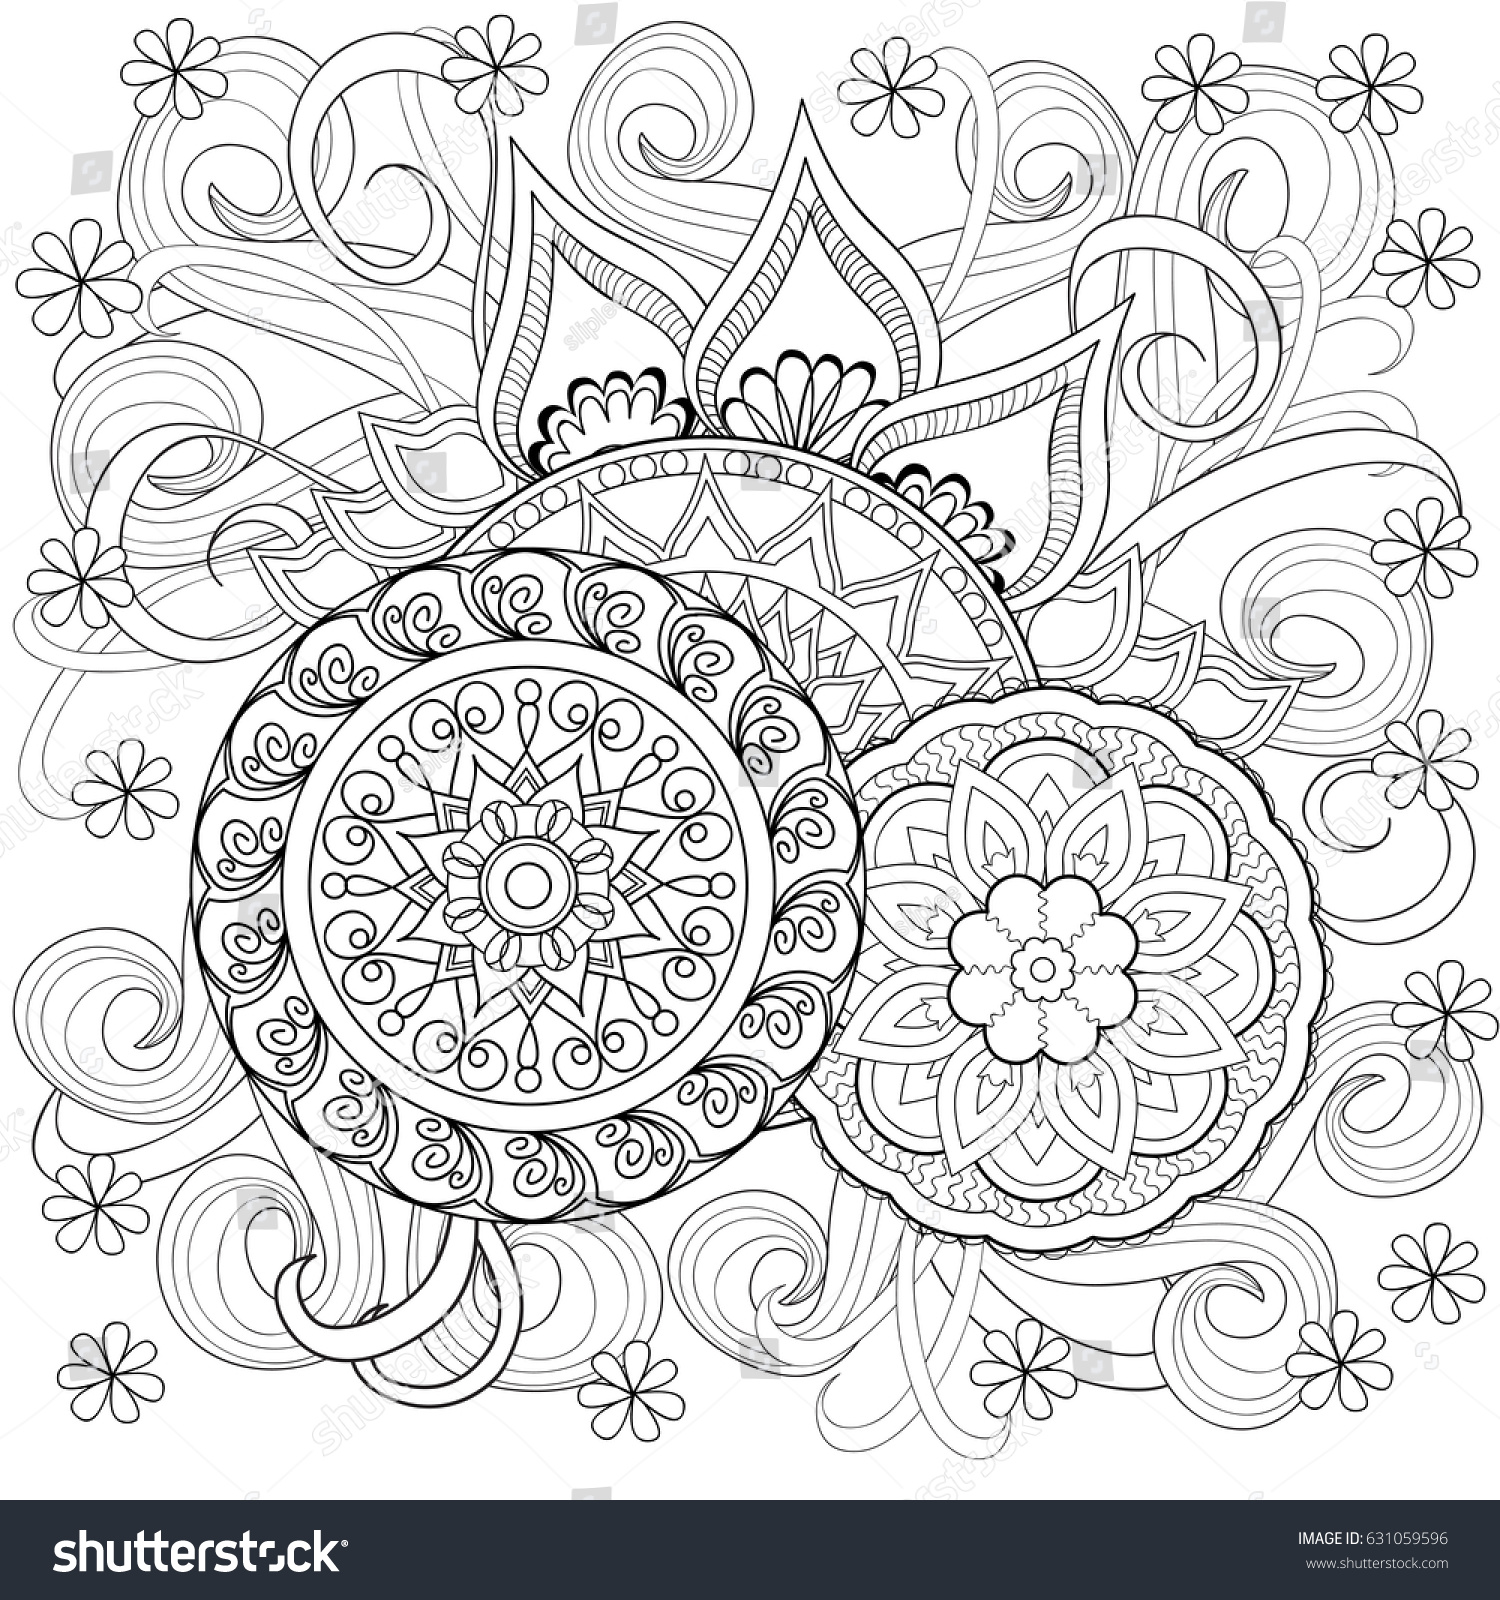 hand drawn decorated image doodle flowers stock illustration